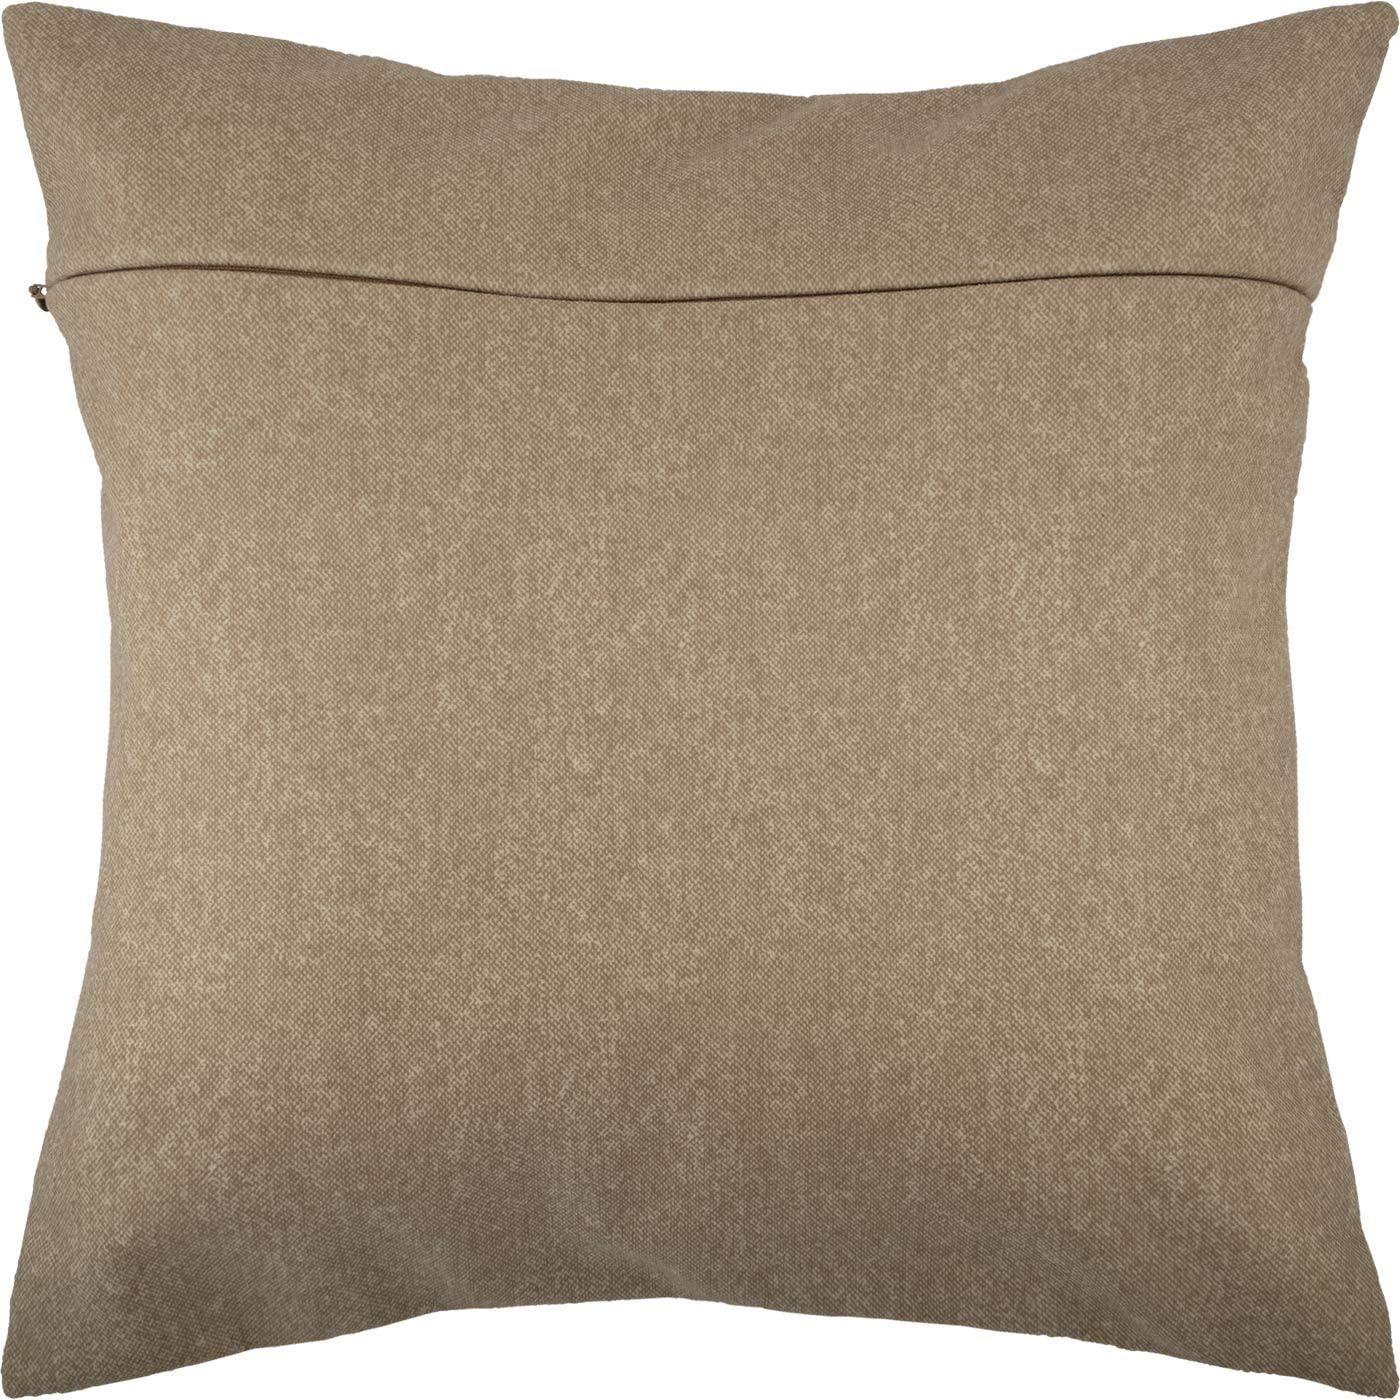 from Europe Ivory with Zipper Beige Backing for Throw Pillow Kits 16 /× 16 inches